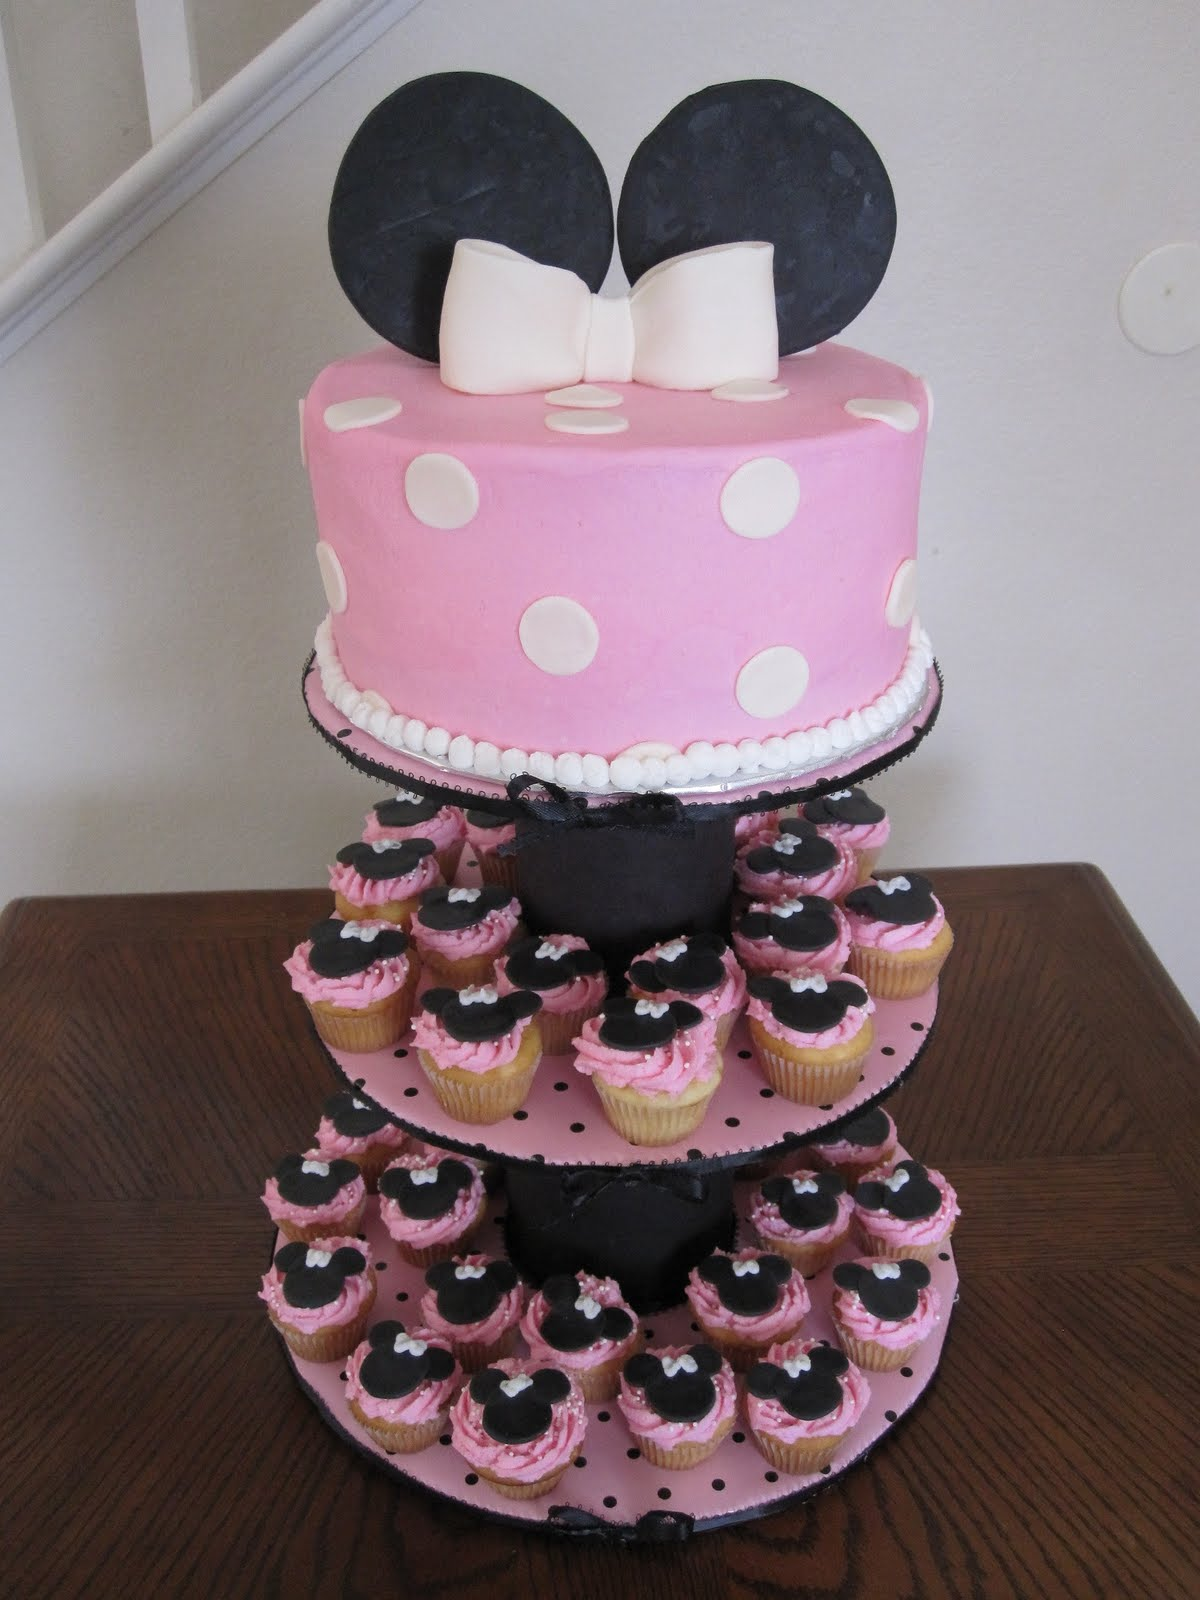 Baby Shower Cakes Minnie Mouse Cake Cupcakes & Stand